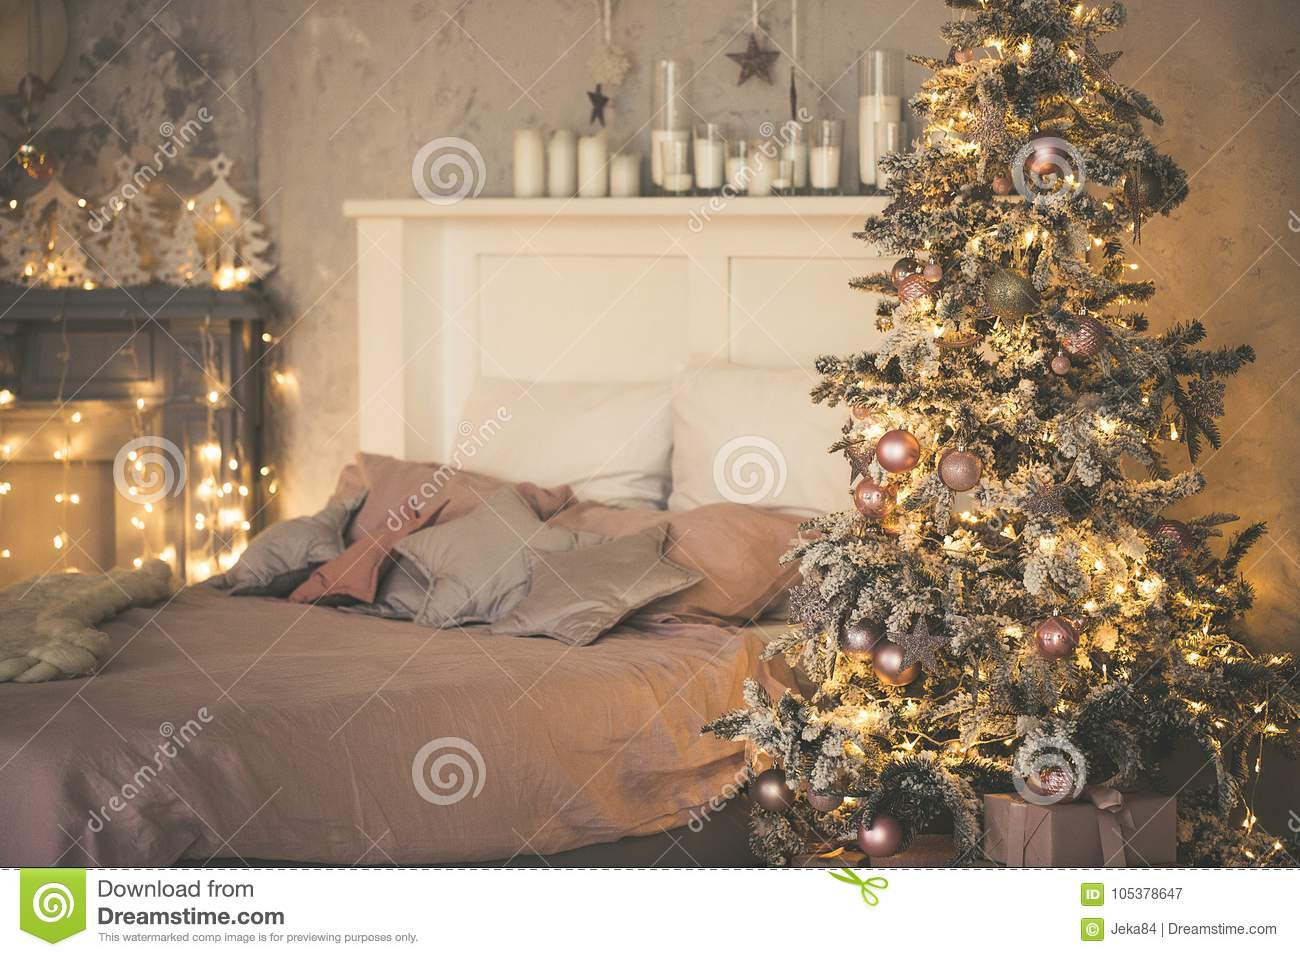 Christmas Living Room With A Christmas Tree Gifts And Bed Beautiful New Year Decorated Classic Home Interior Winter Background Stock Image Image Of Gift Indoors 105378647